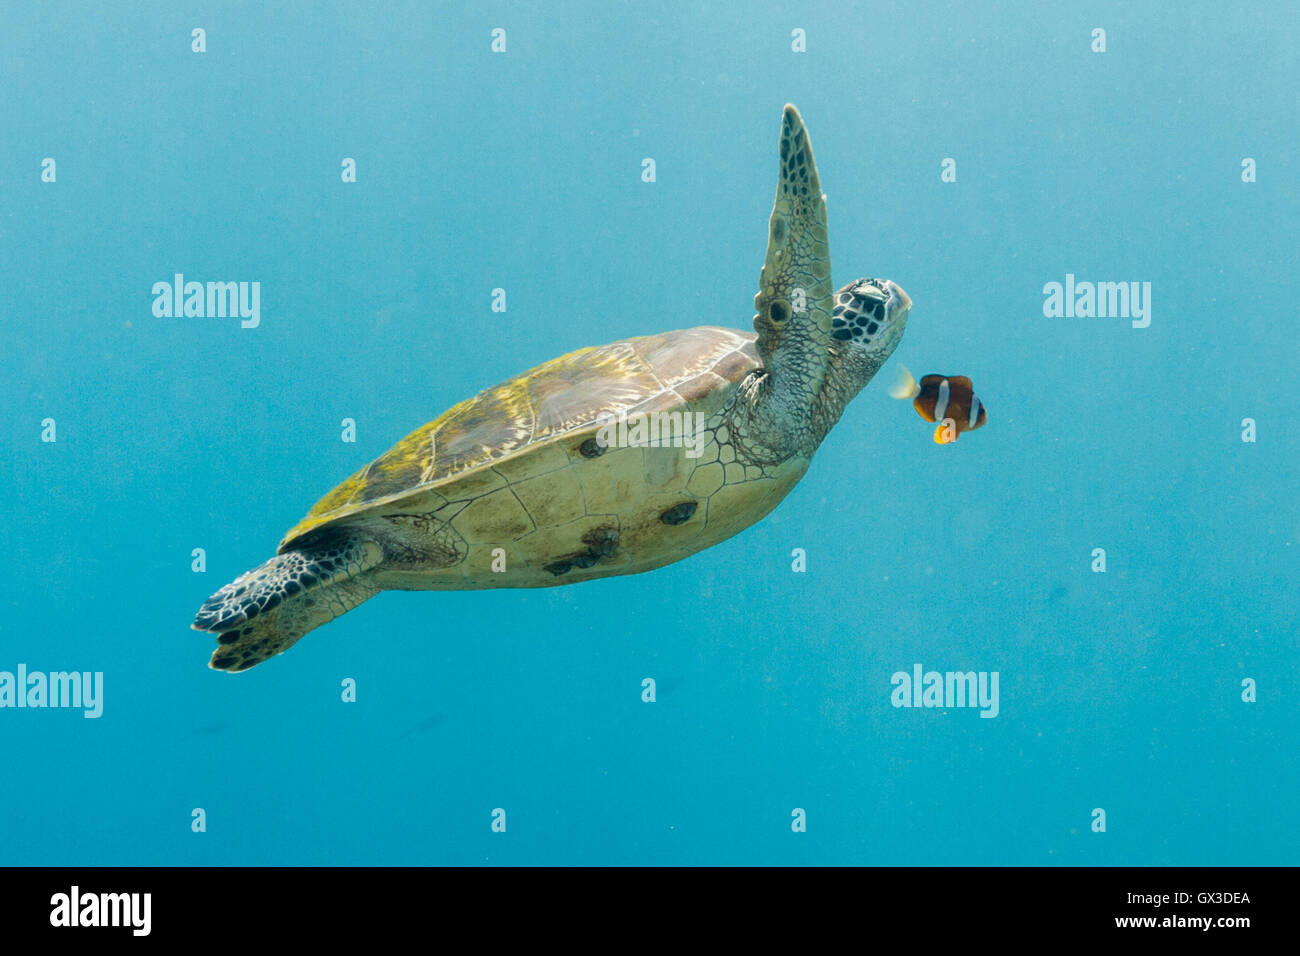 Apo island, Philippines.  15th September 2016.  In a scene straight out of Finding Nemo this Green turtle seems - Stock Image